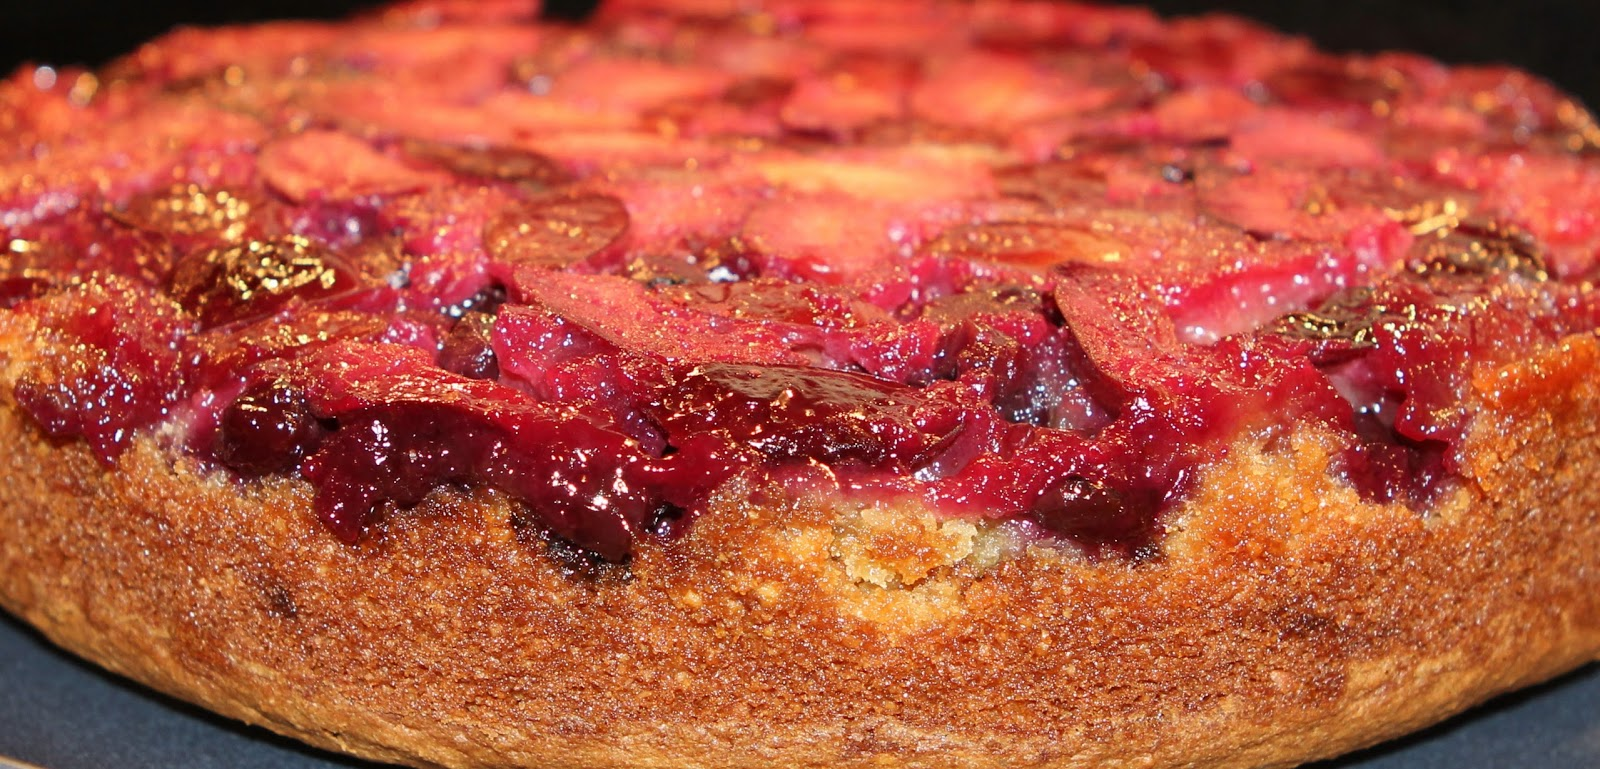 ... upside down cake plum blueberry upside down cake plum upside down cake